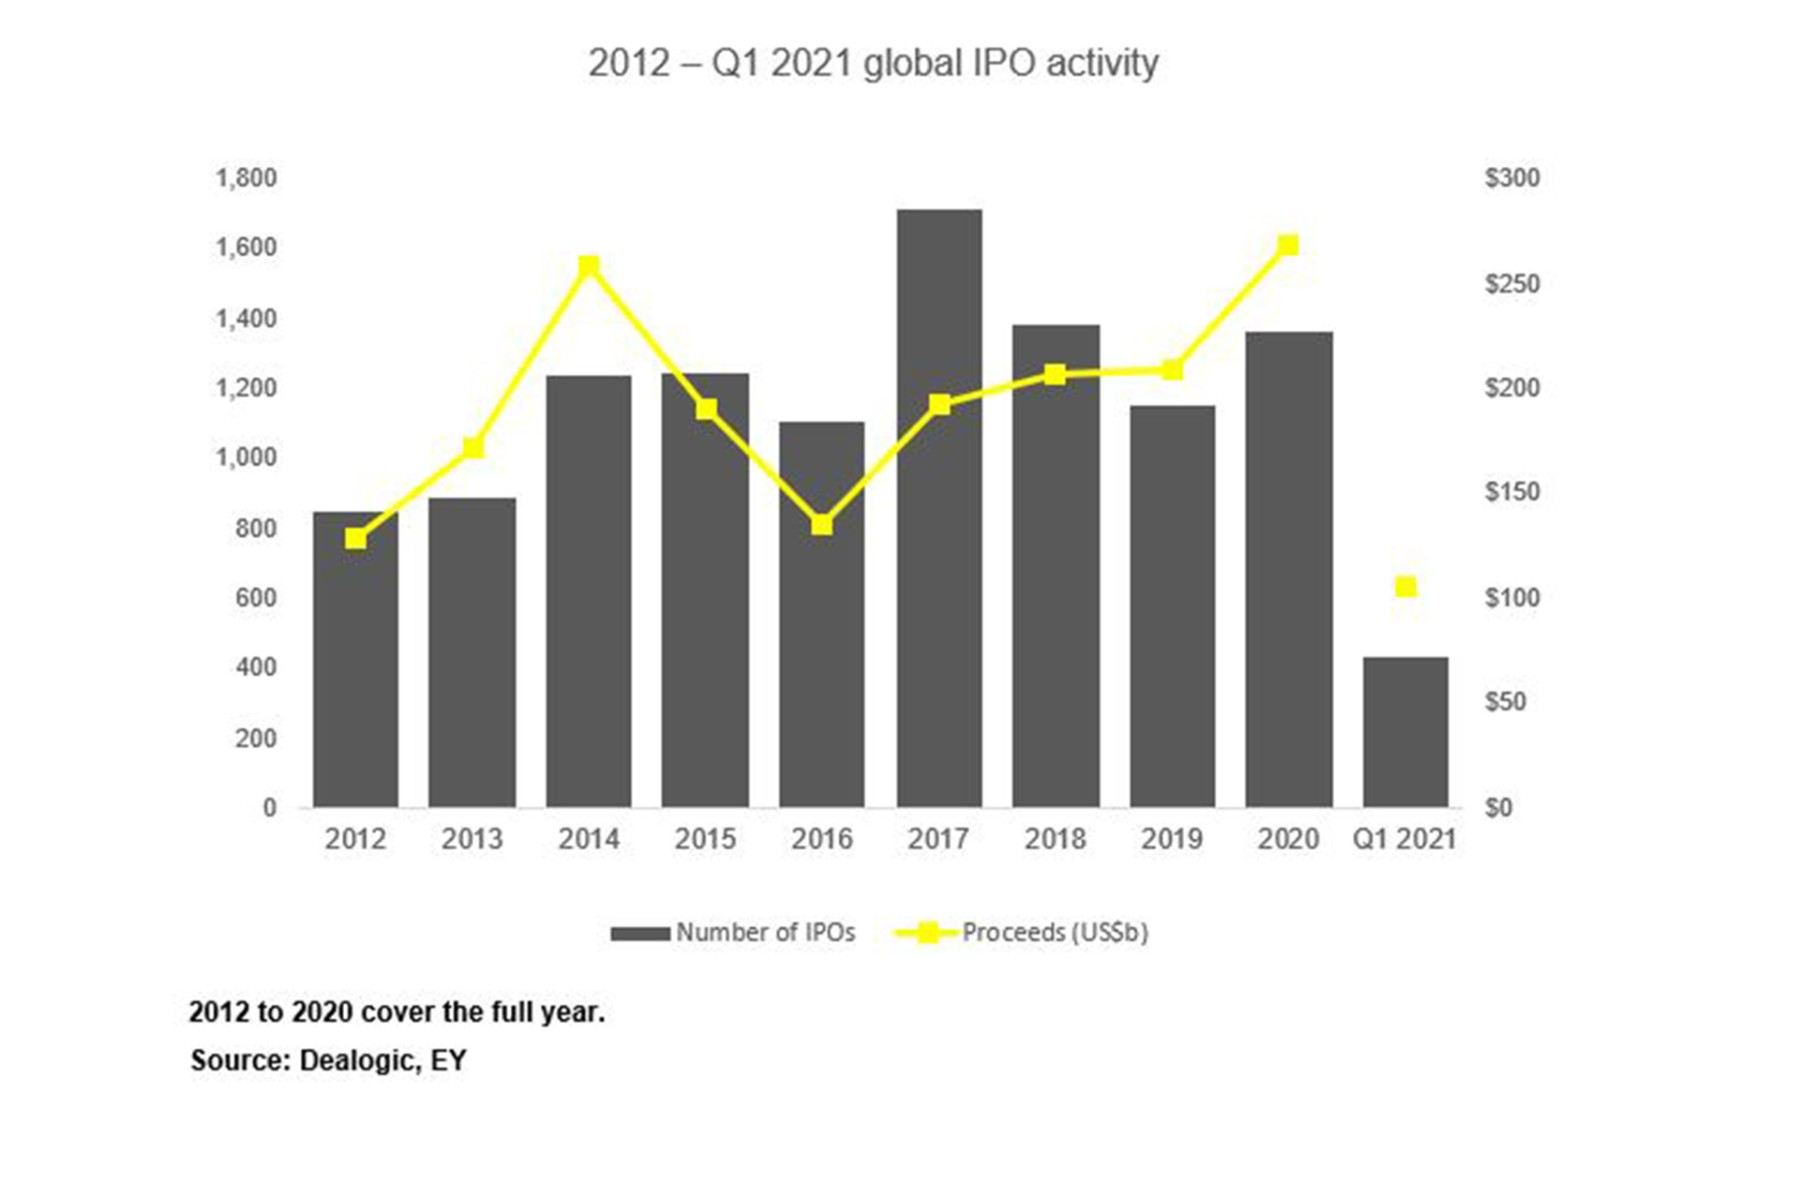 EY Global IPO Activity 2021 Q1 History